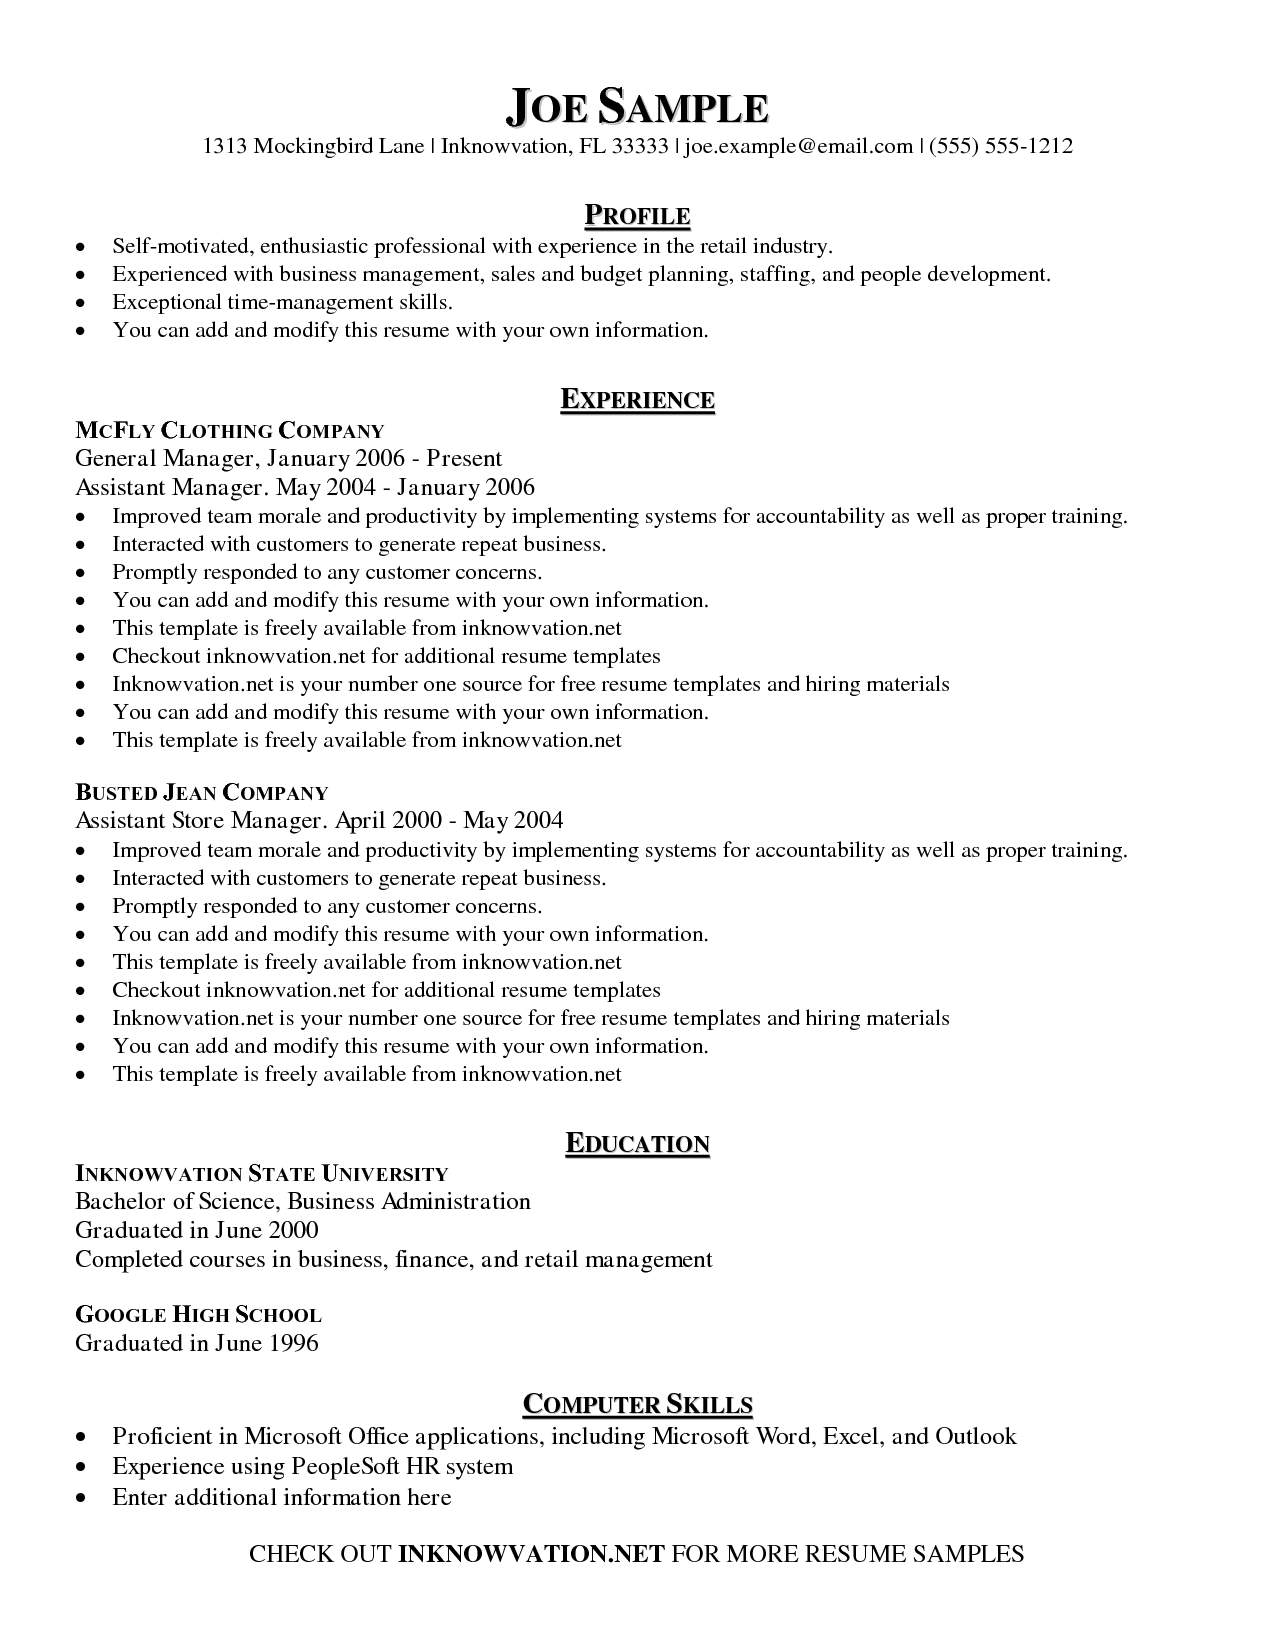 Sample Of Free Resume Templates Resume Examples